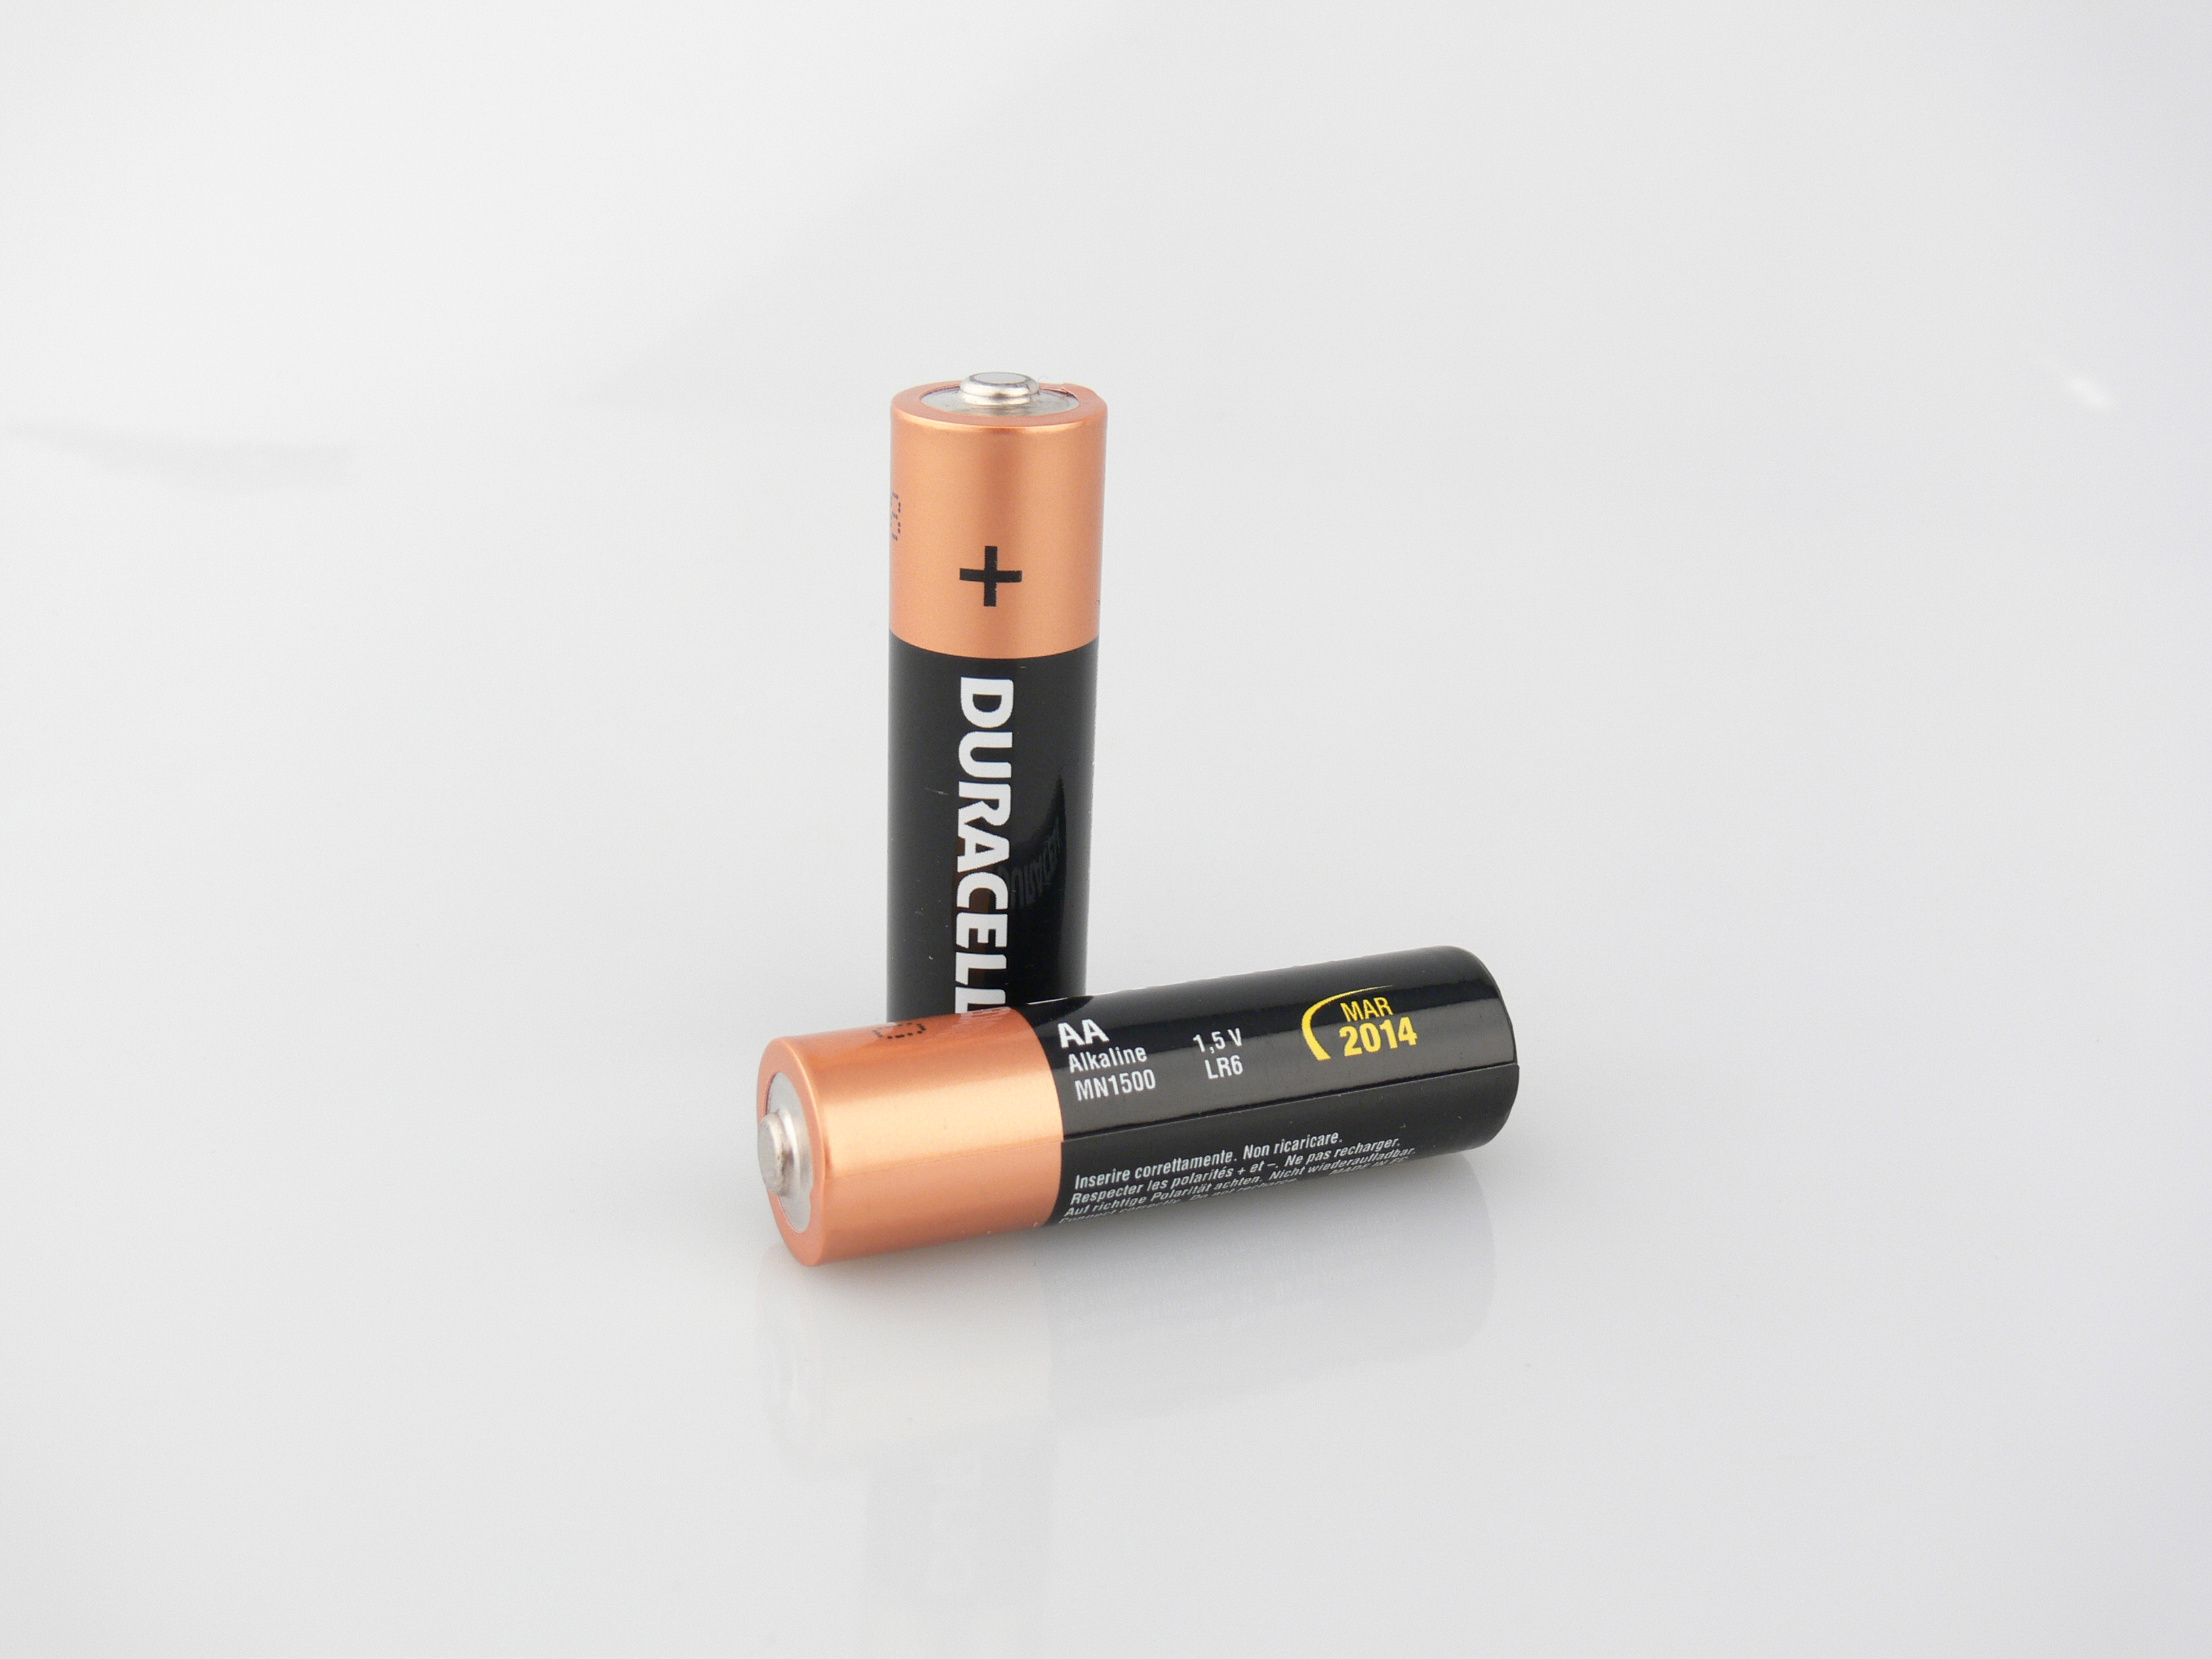 Duracell battery AA type